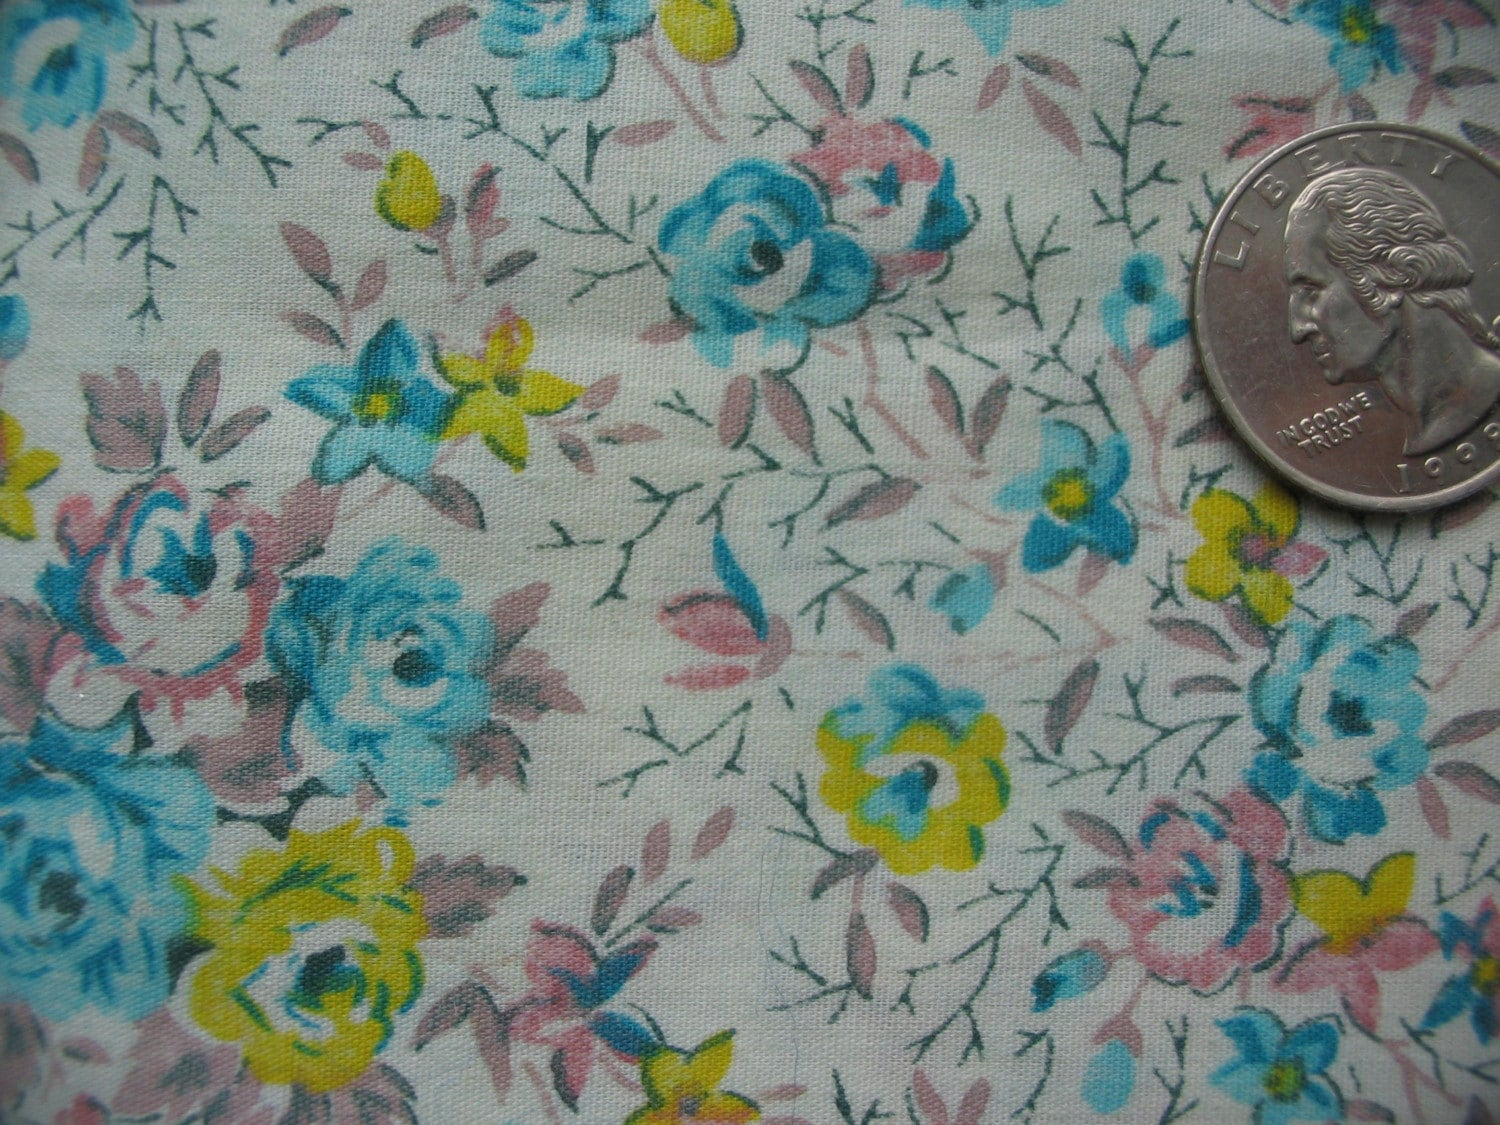 Vintage 1970s 1960s Calico Quilt Fabric Aqua Blue Pink and Yellow  Roses on Light Aqua 18 inches 45.7 Centimeters